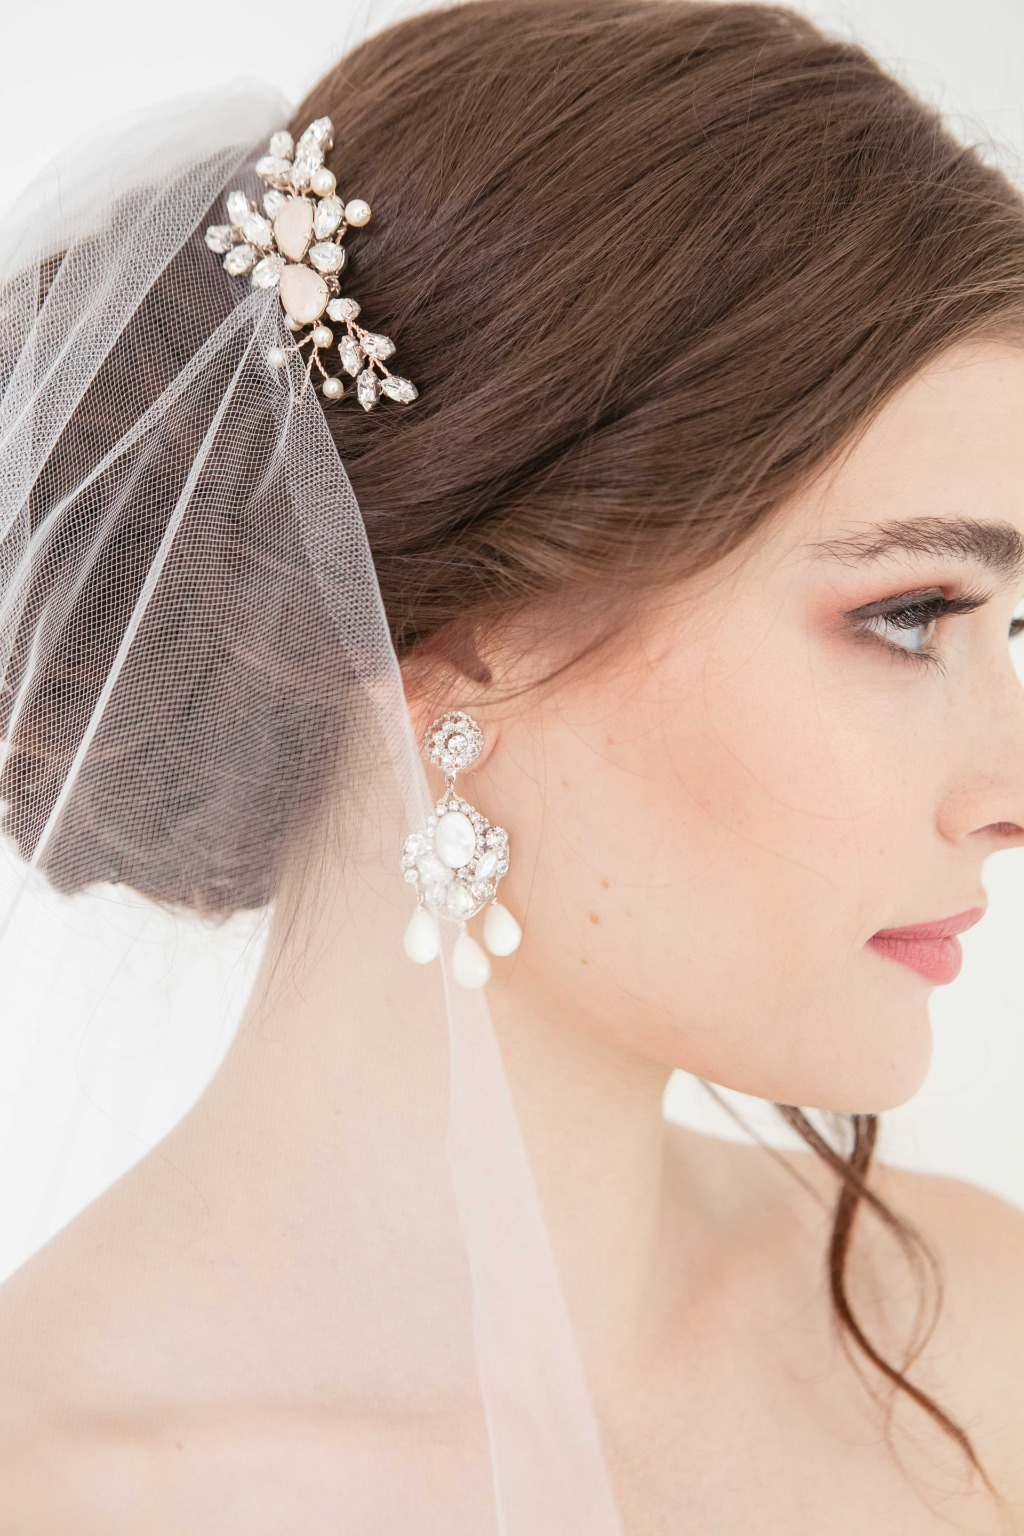 Looking for bridal jewelry and hair accessories? Explore Laura Jayne's website.